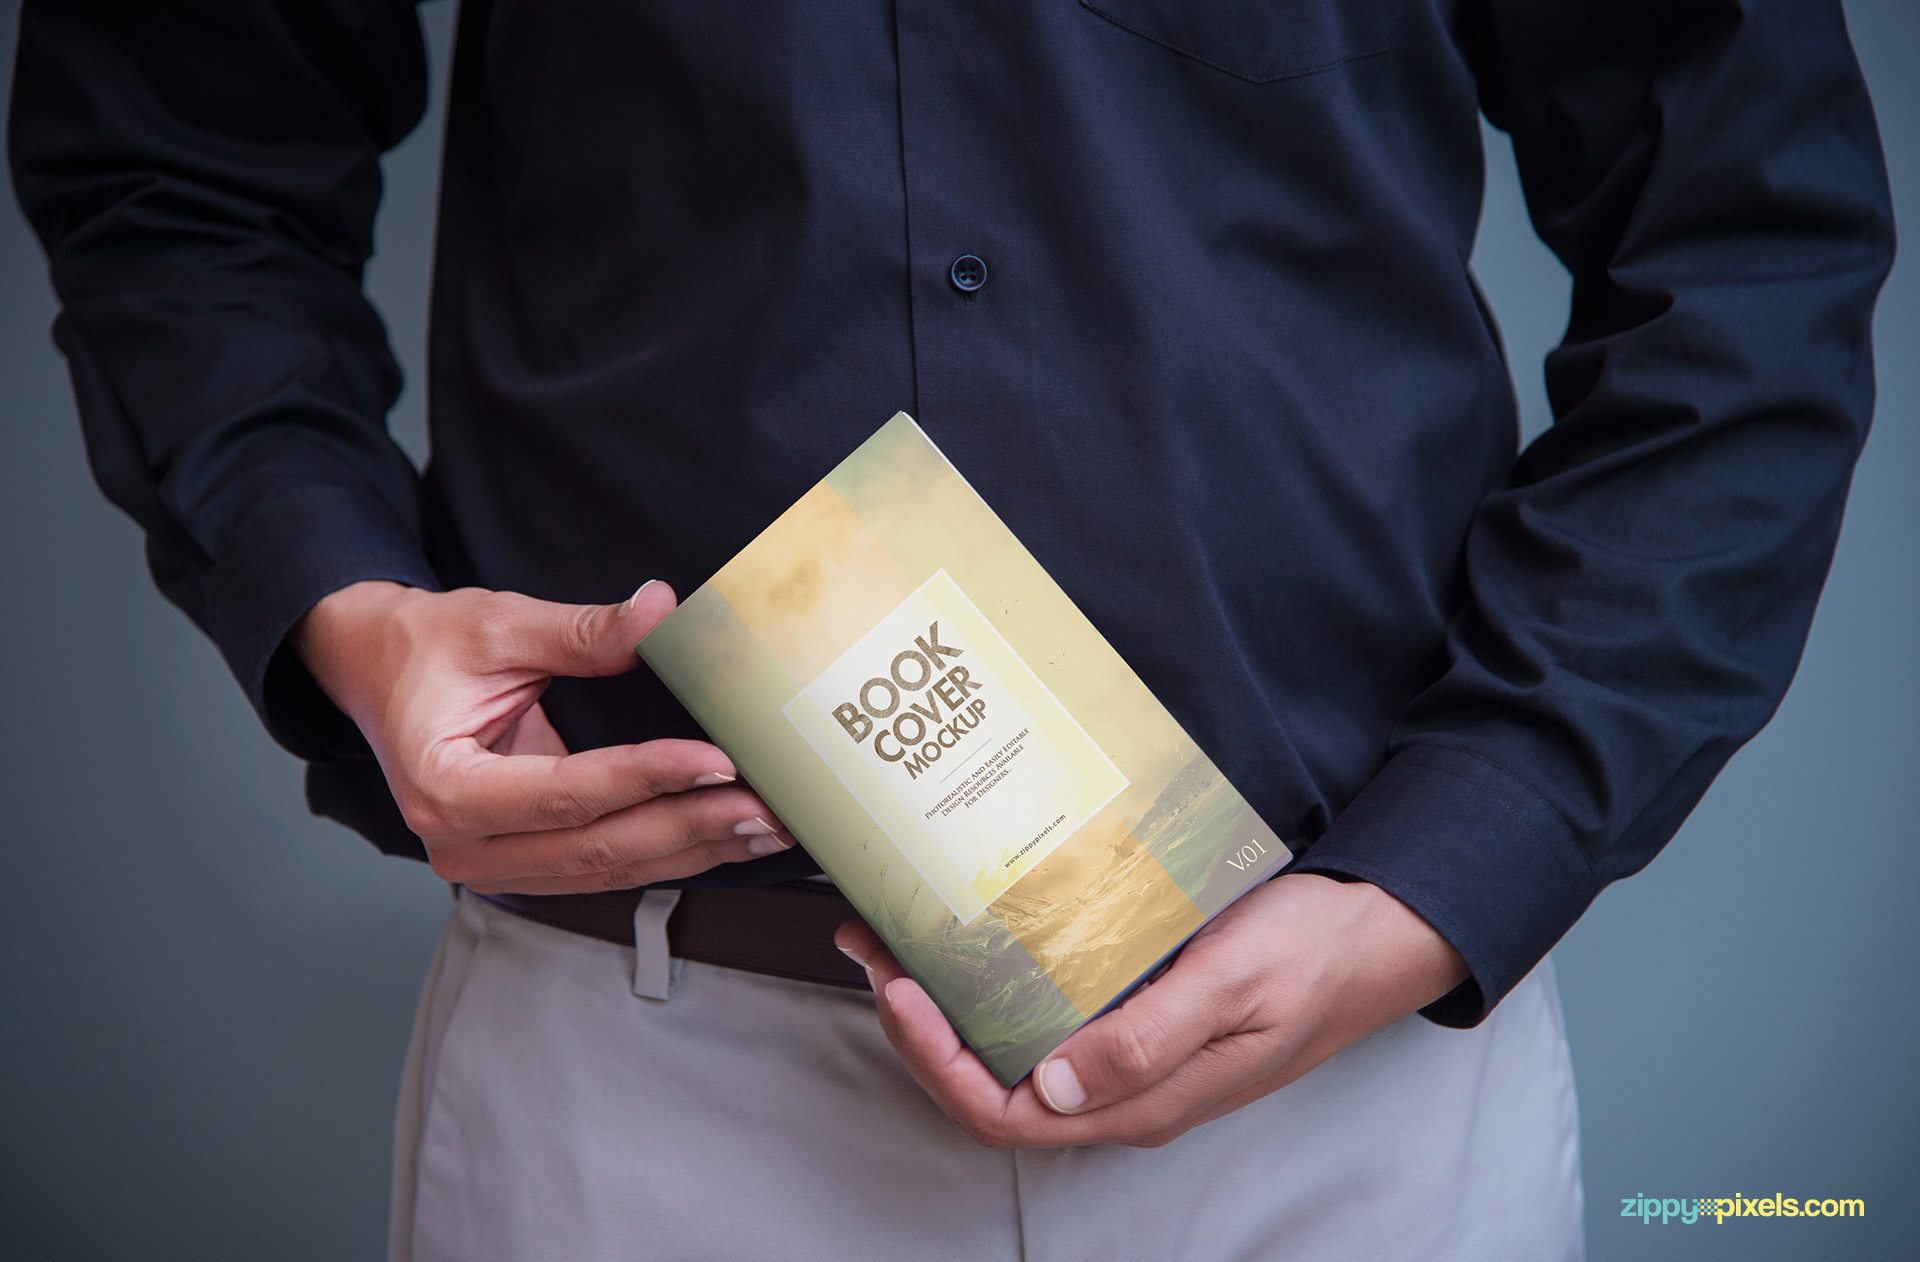 Realistic Book mockups showing a person holding a softcover book in hands to showcase cover design